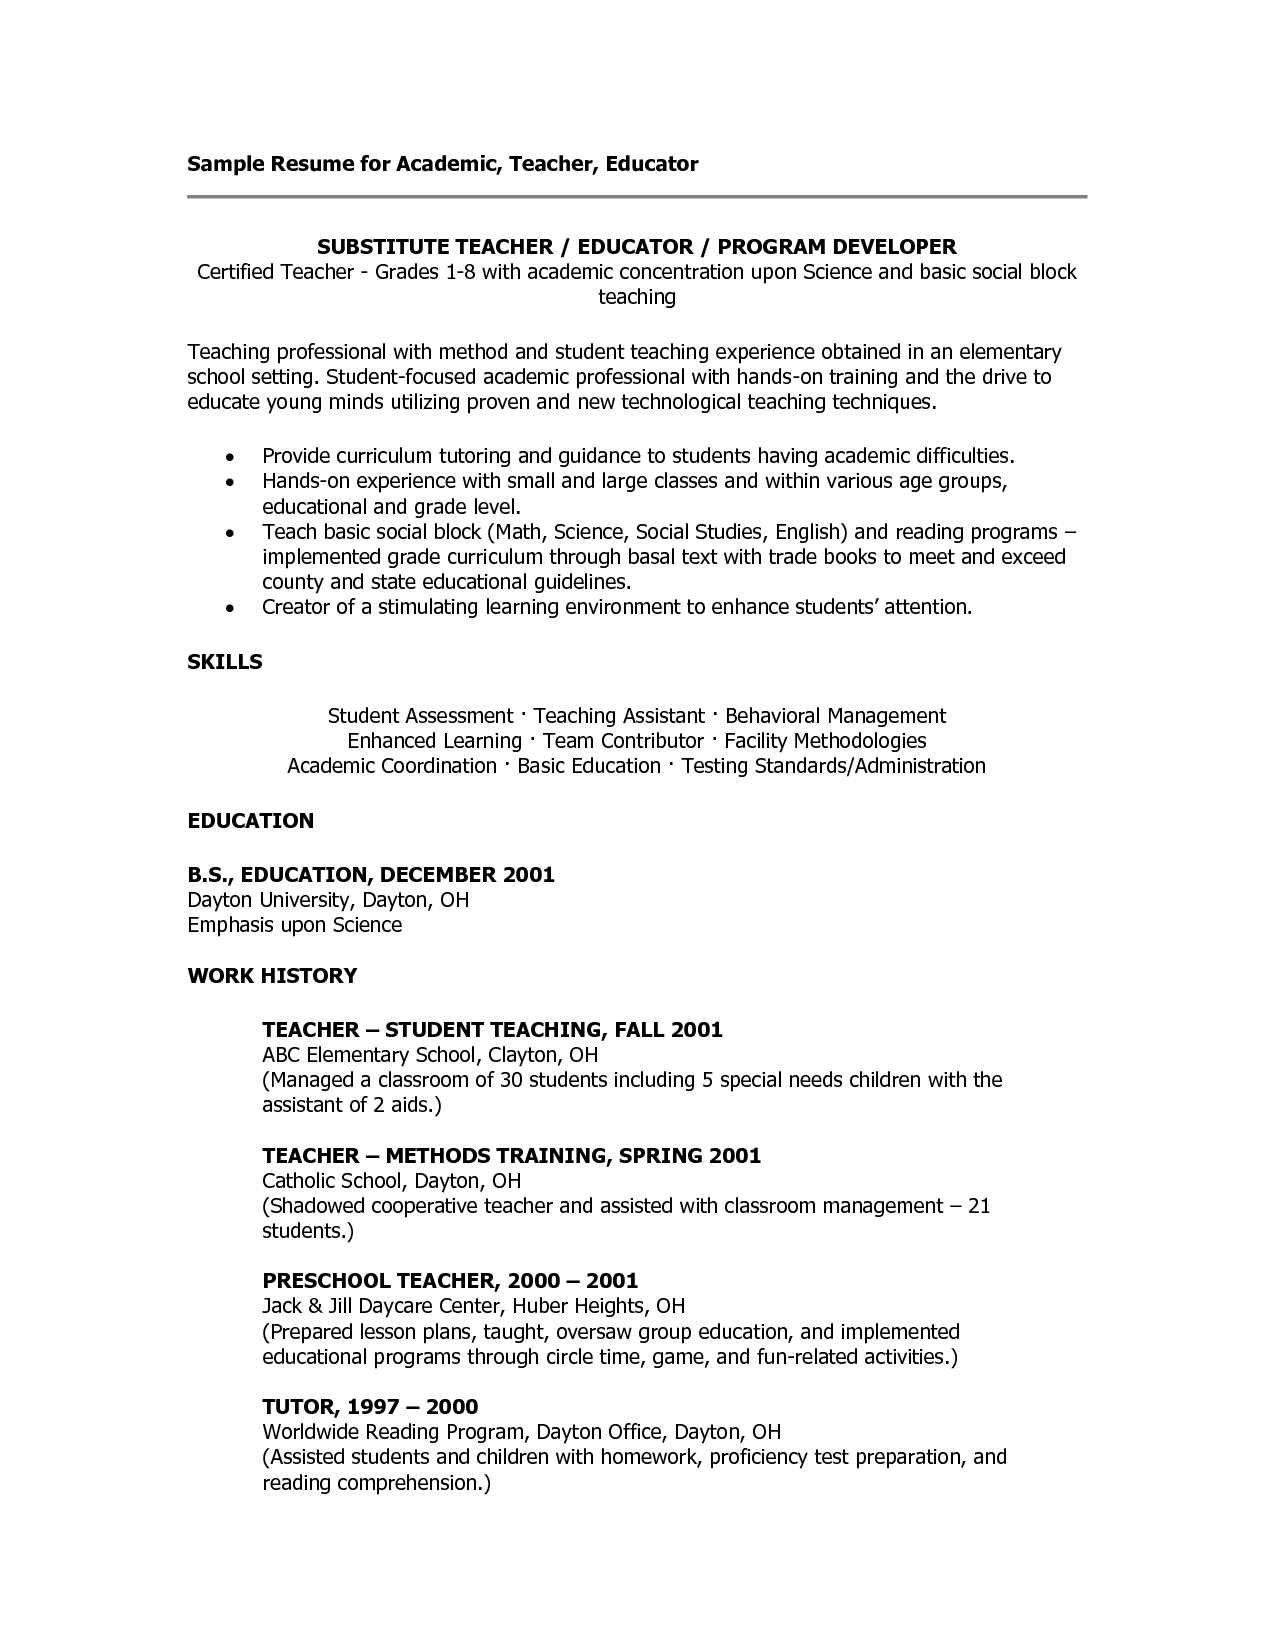 Academic Resume Template Sample Teacher Resumes  Substitute Teacher Resume  Fcs